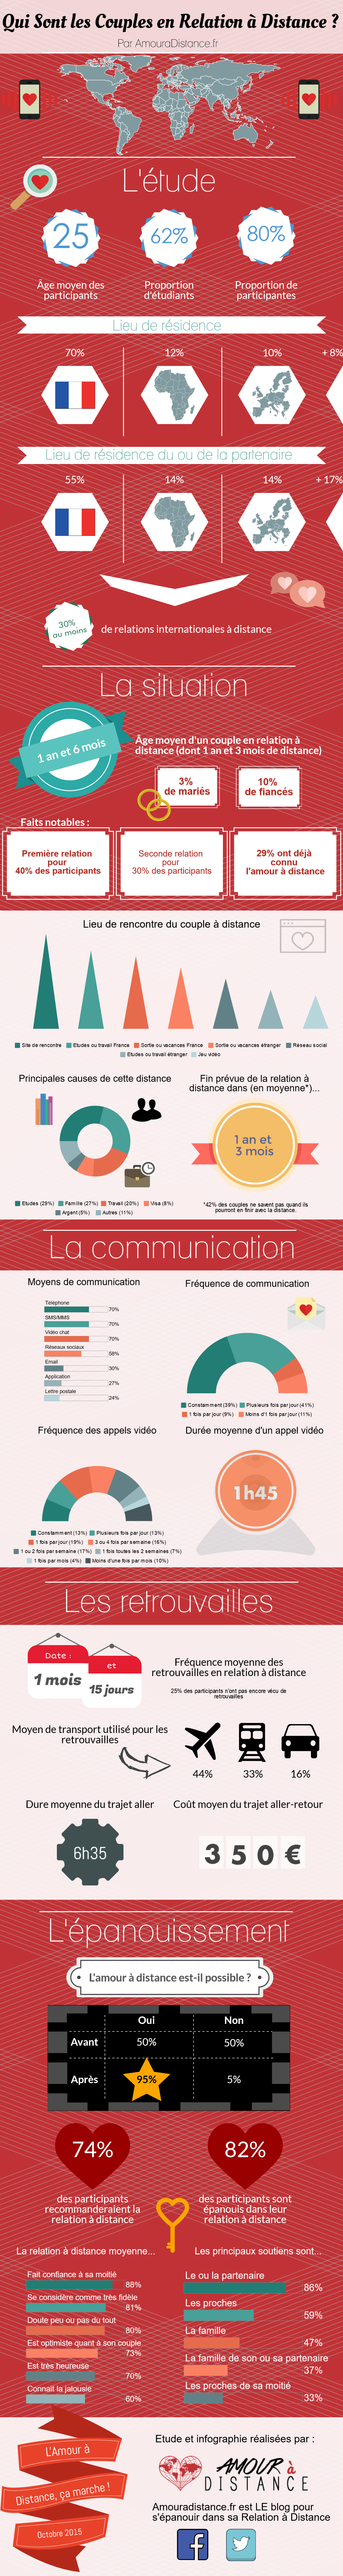 Infographie 2015 Relation a Distance